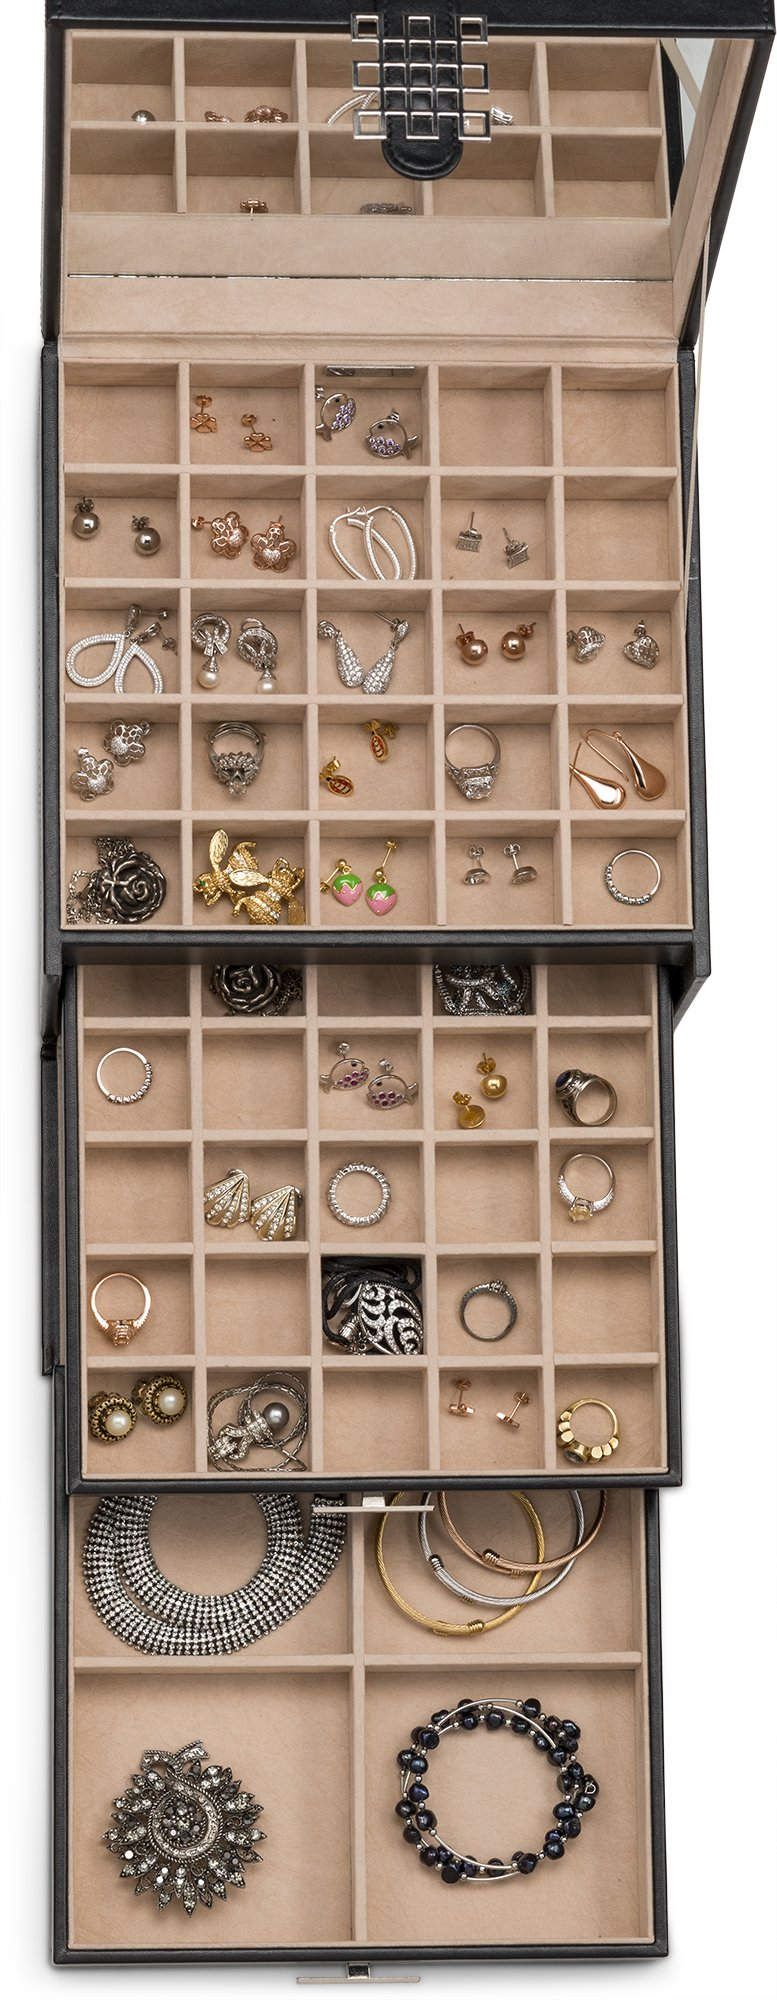 c33e2f3bd Glenor Co Earring Organizer Holder - 50 Small 4 Large Slots Classic Jewelry  box with Drawer Modern Closure, Mirror, 3 Trays for All Sizes Earrings, ...